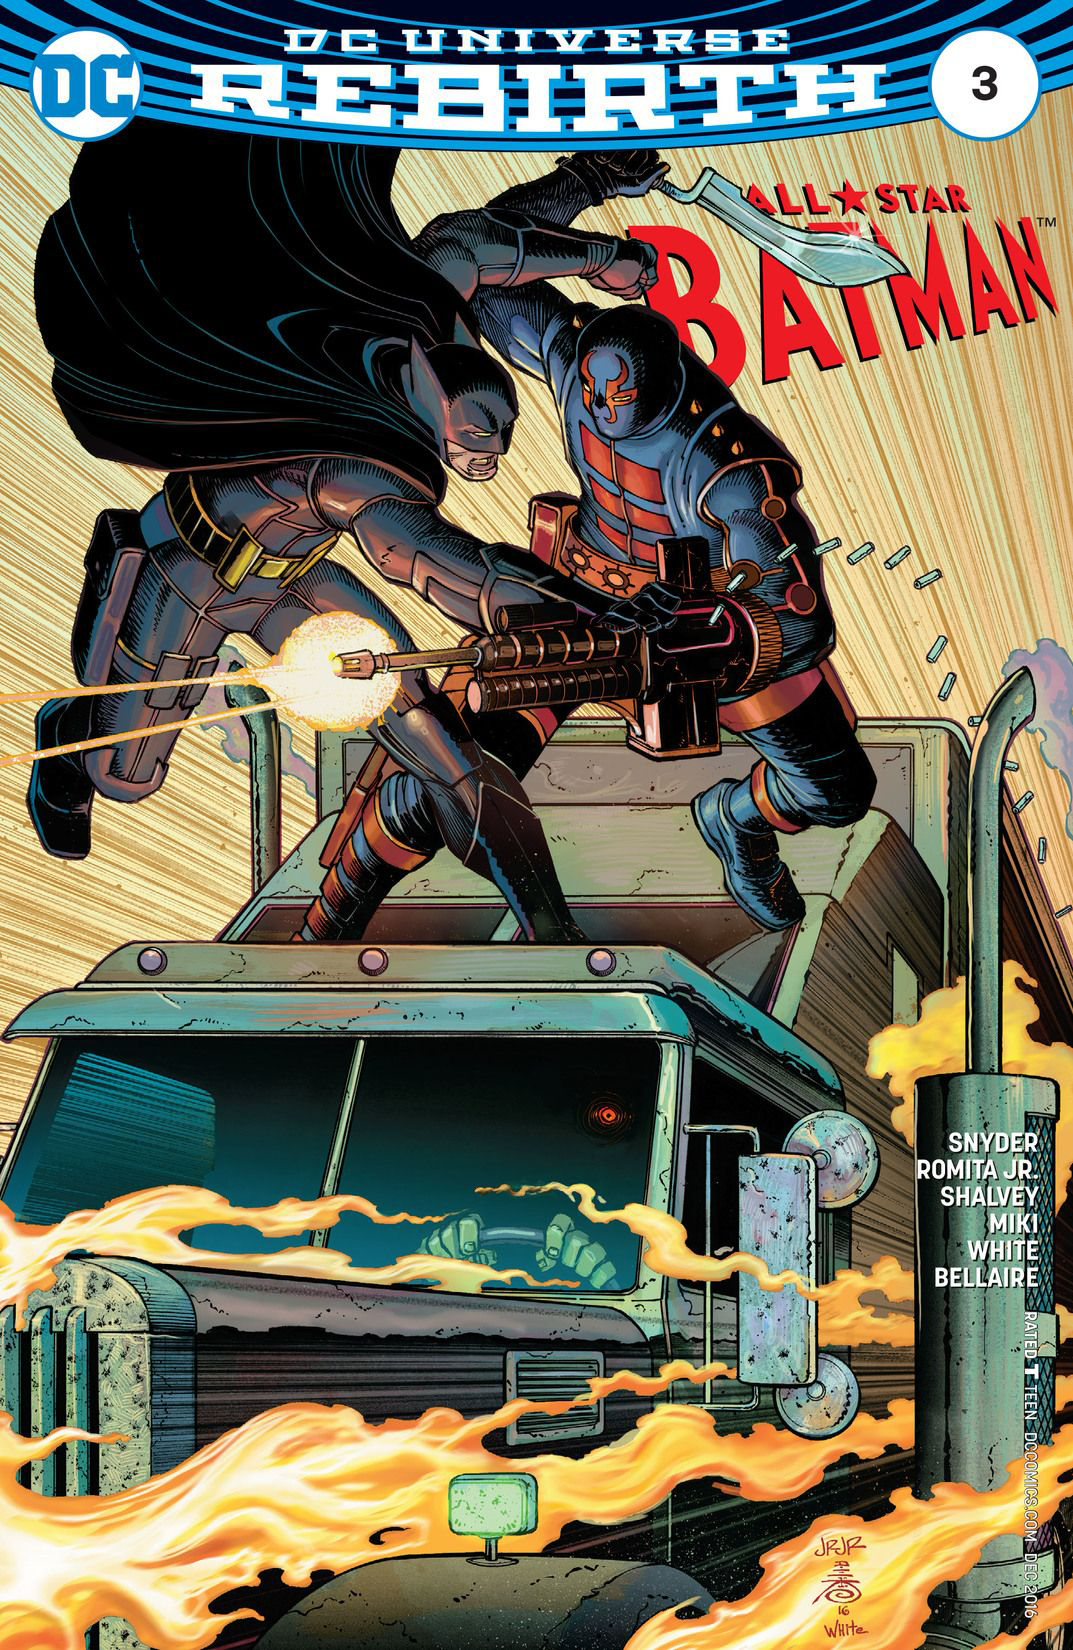 ALL STAR BATMAN #3